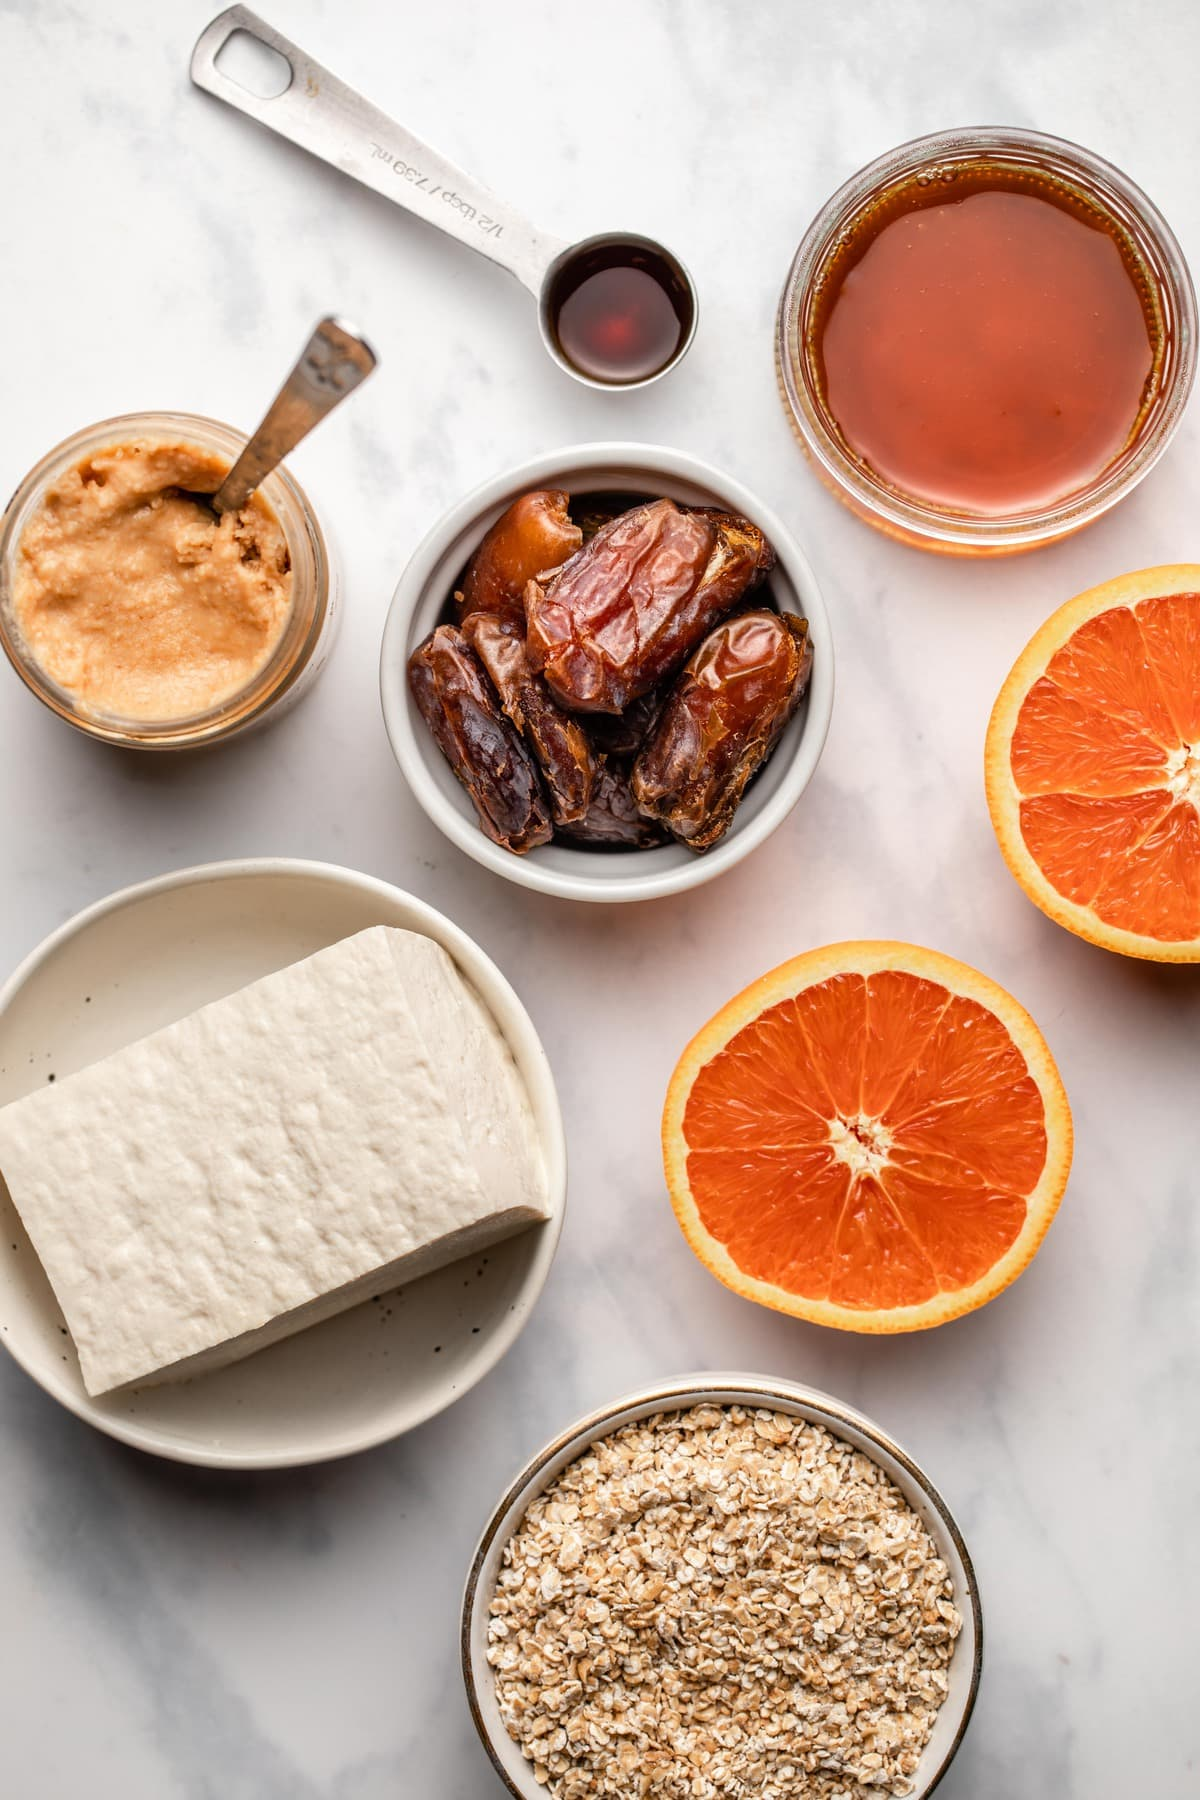 ingredients for toasted coconut cheesecake in small bowls on marble background